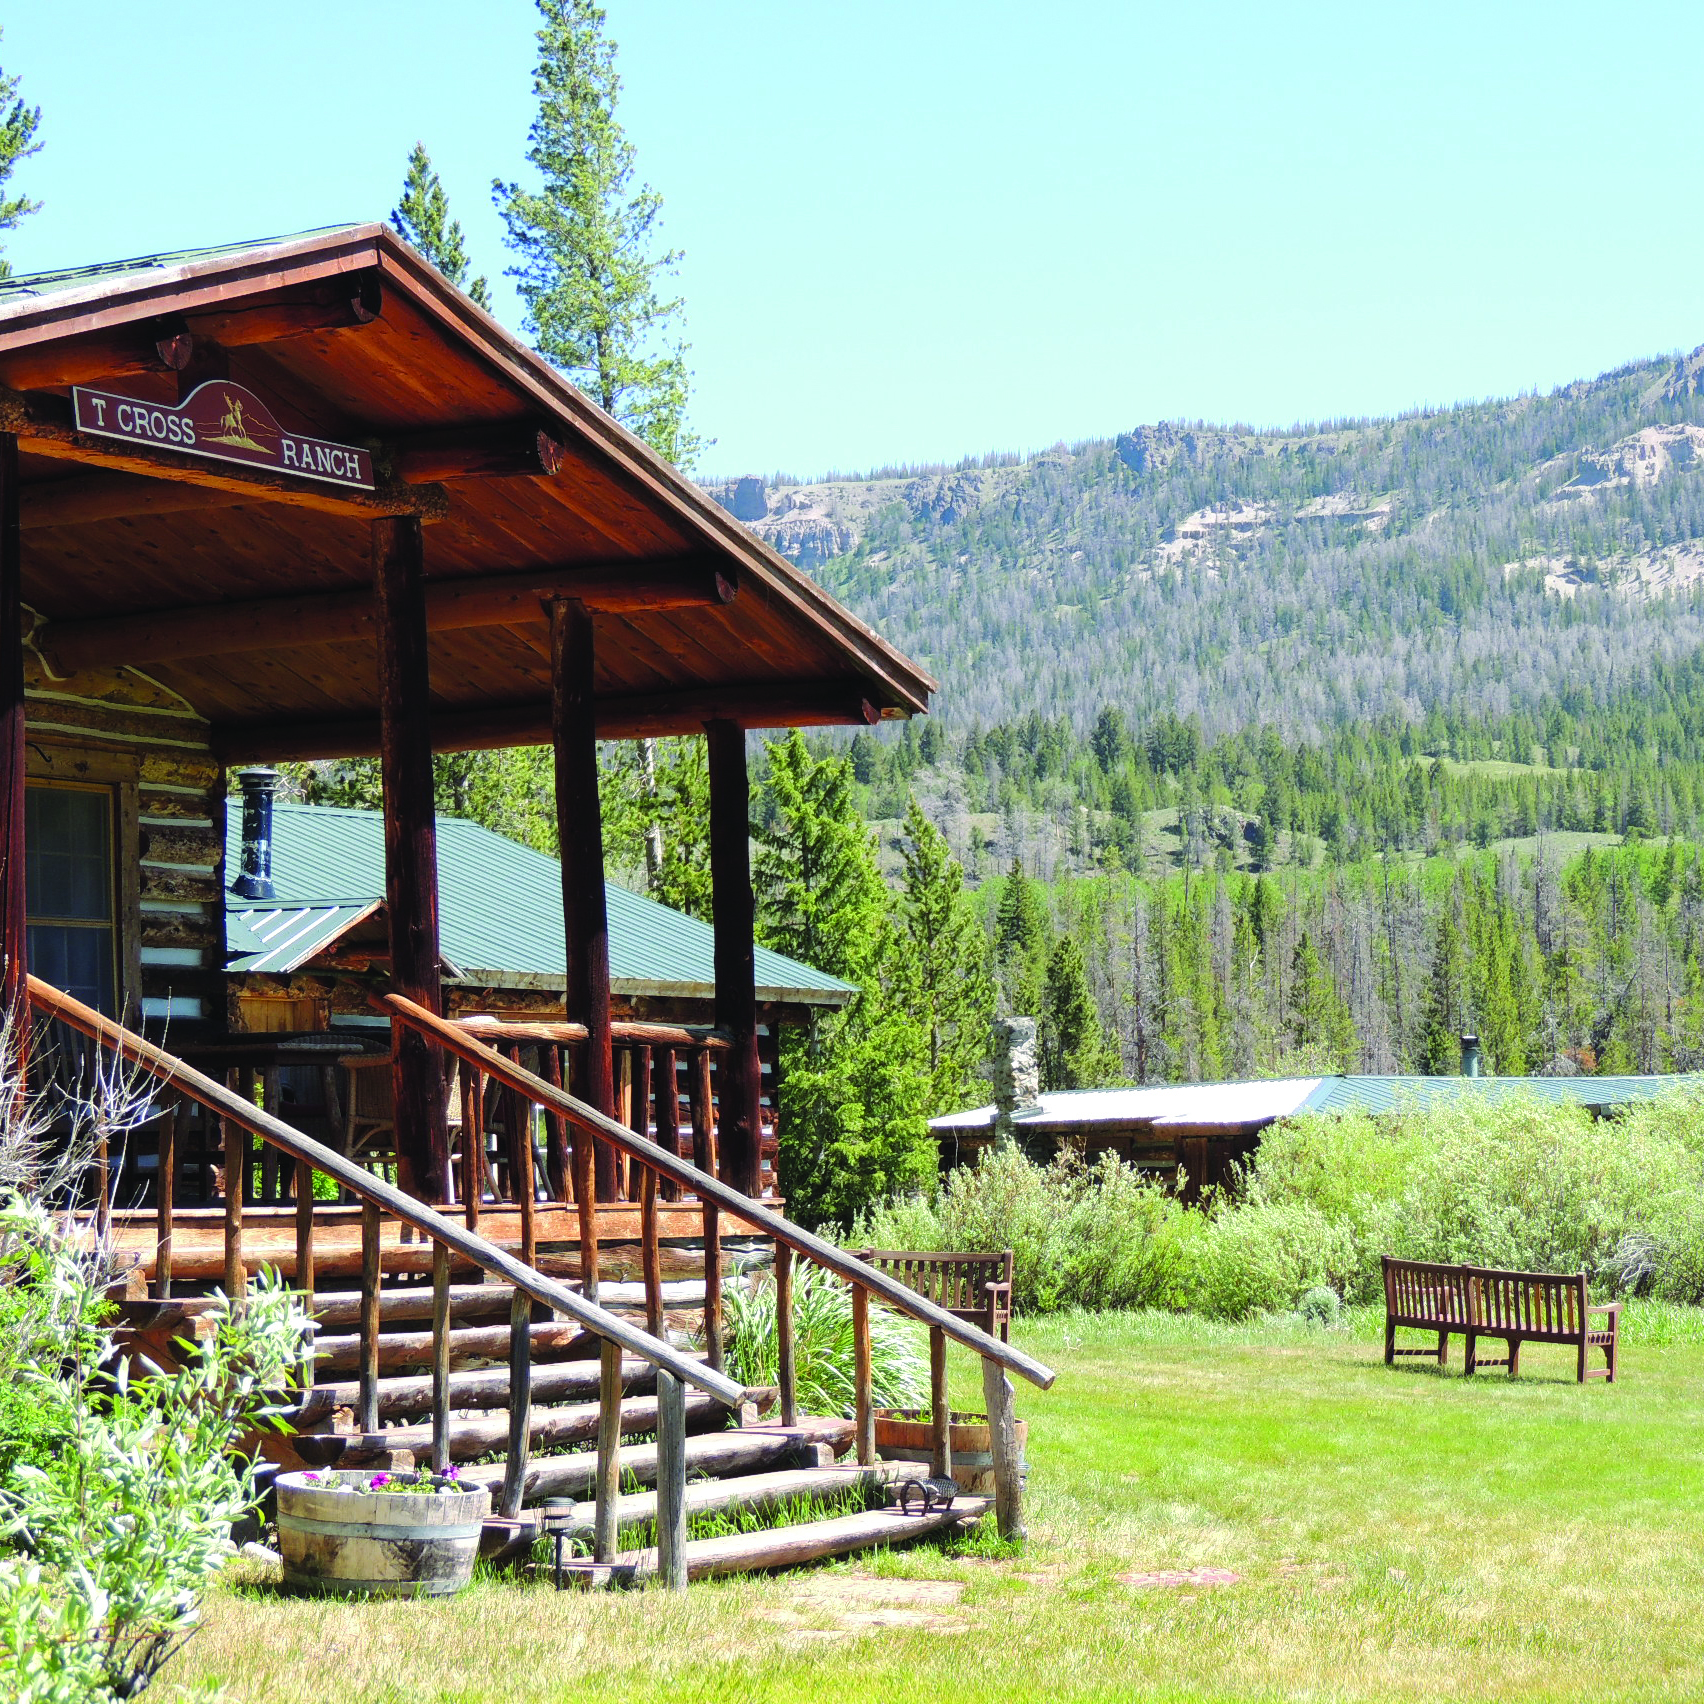 Hunting ranches for sale in wyoming and montana - Montana Wyoming And Idaho Ranch Real Estate Market News